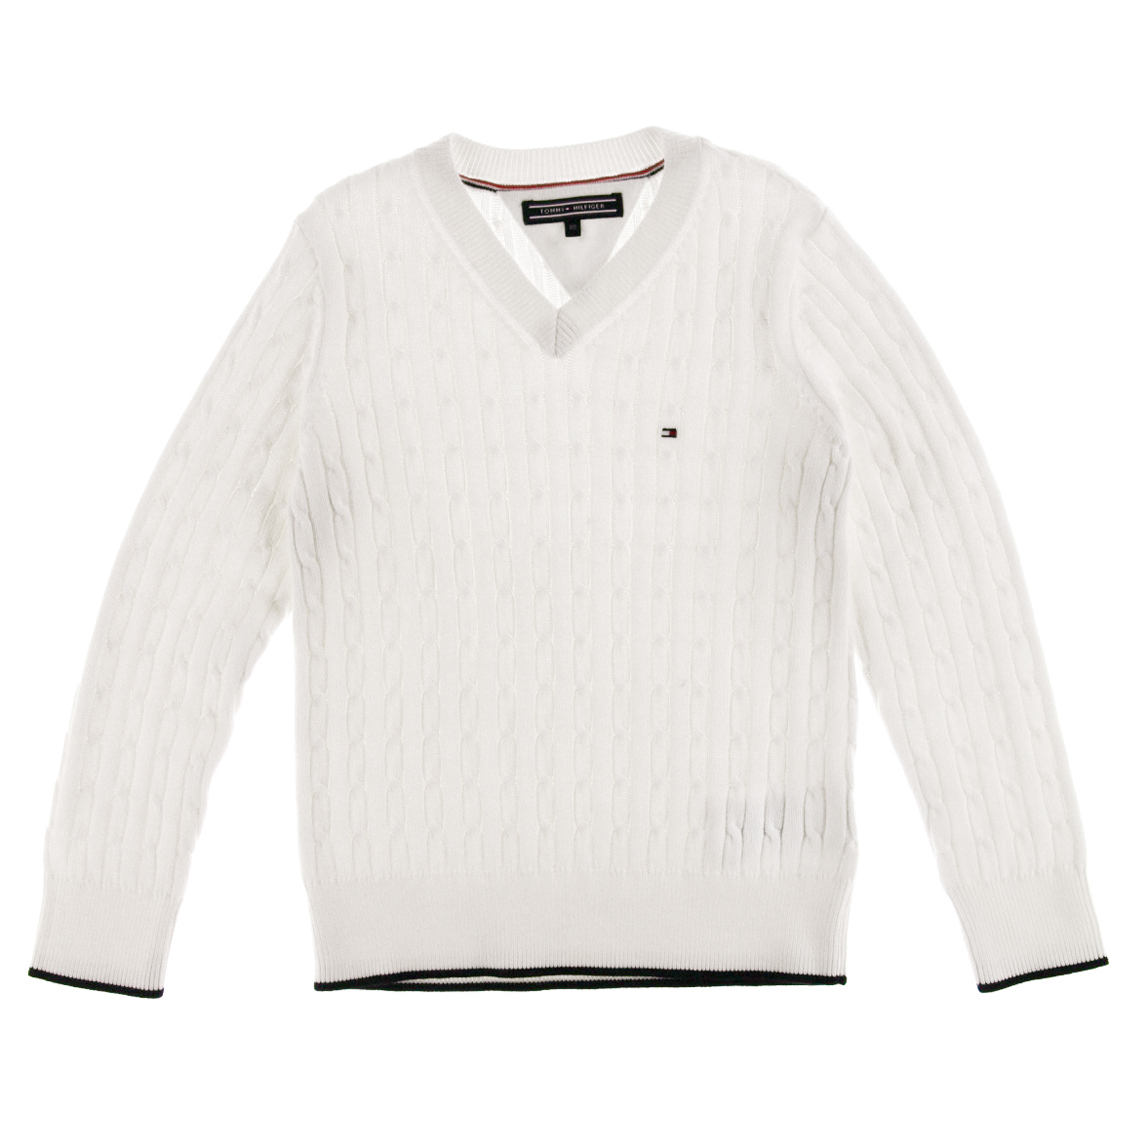 JAPAN BOYS V-NECK CABLE SWEATER